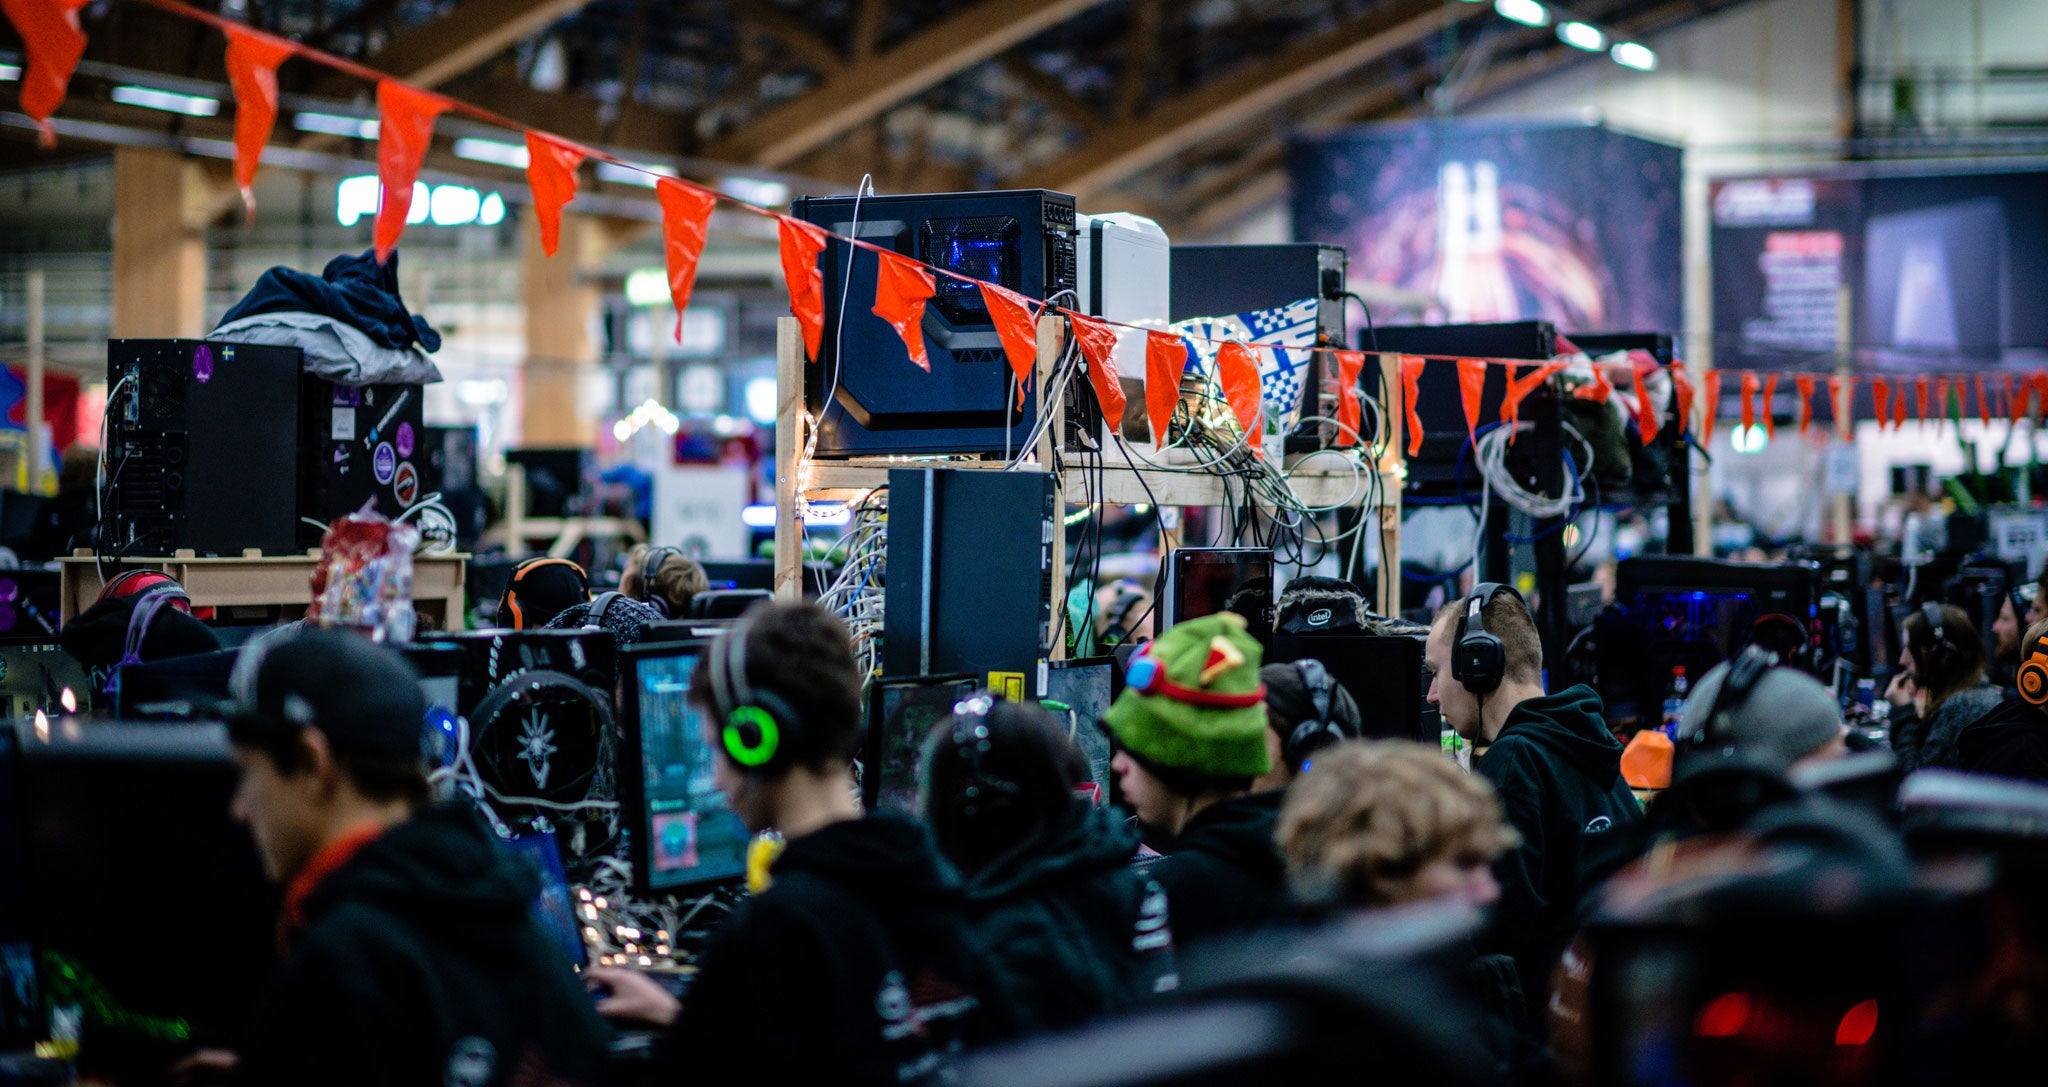 World's Biggest LAN Party Had Over 22,000 Computers, Looked Awesome